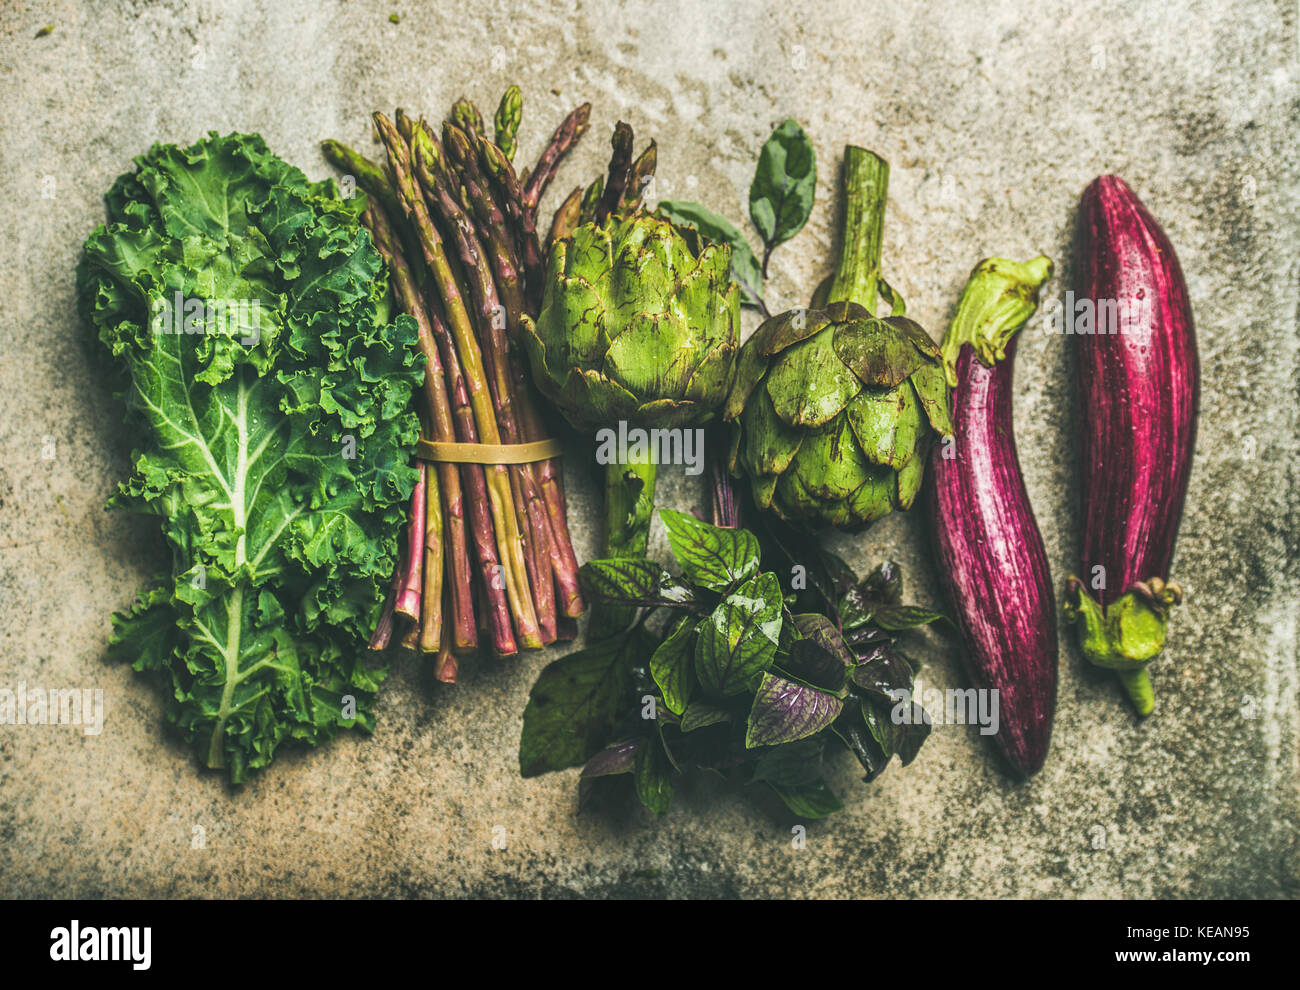 Flat-lay of fresh green and purple vegetables, top view - Stock Image